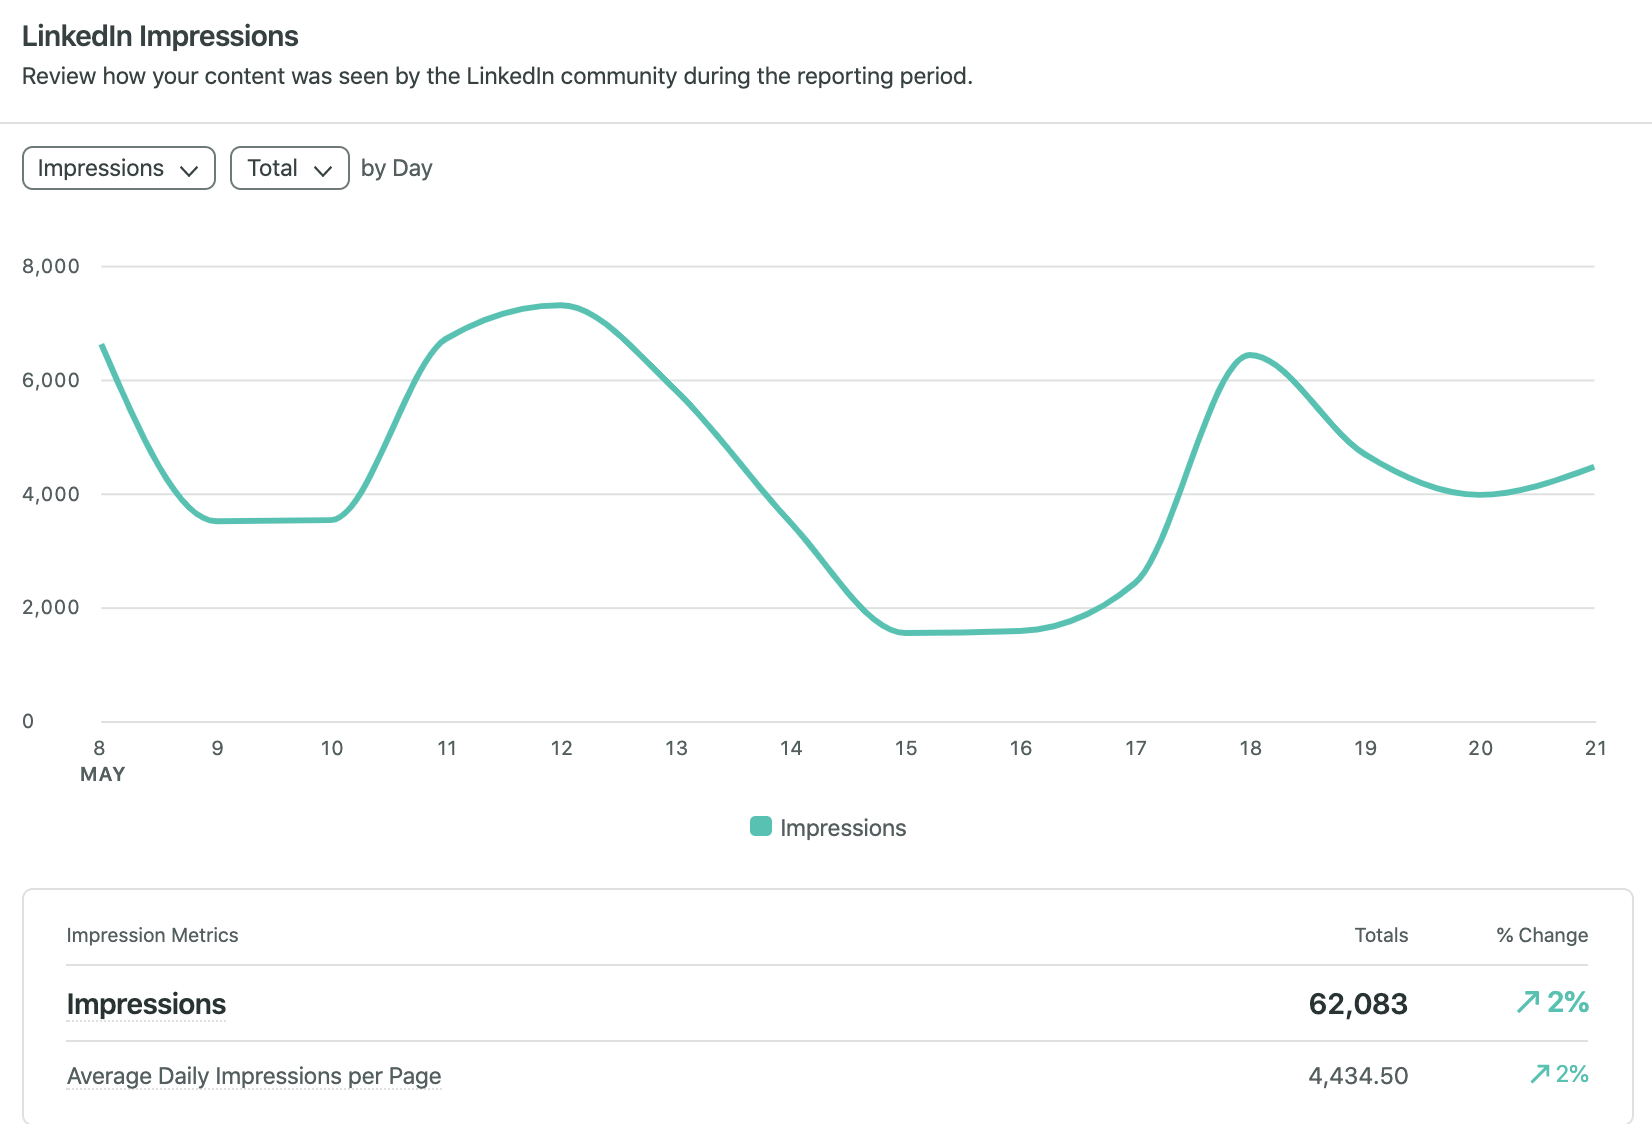 linkedin impressions highlight how much traffic your page is getting